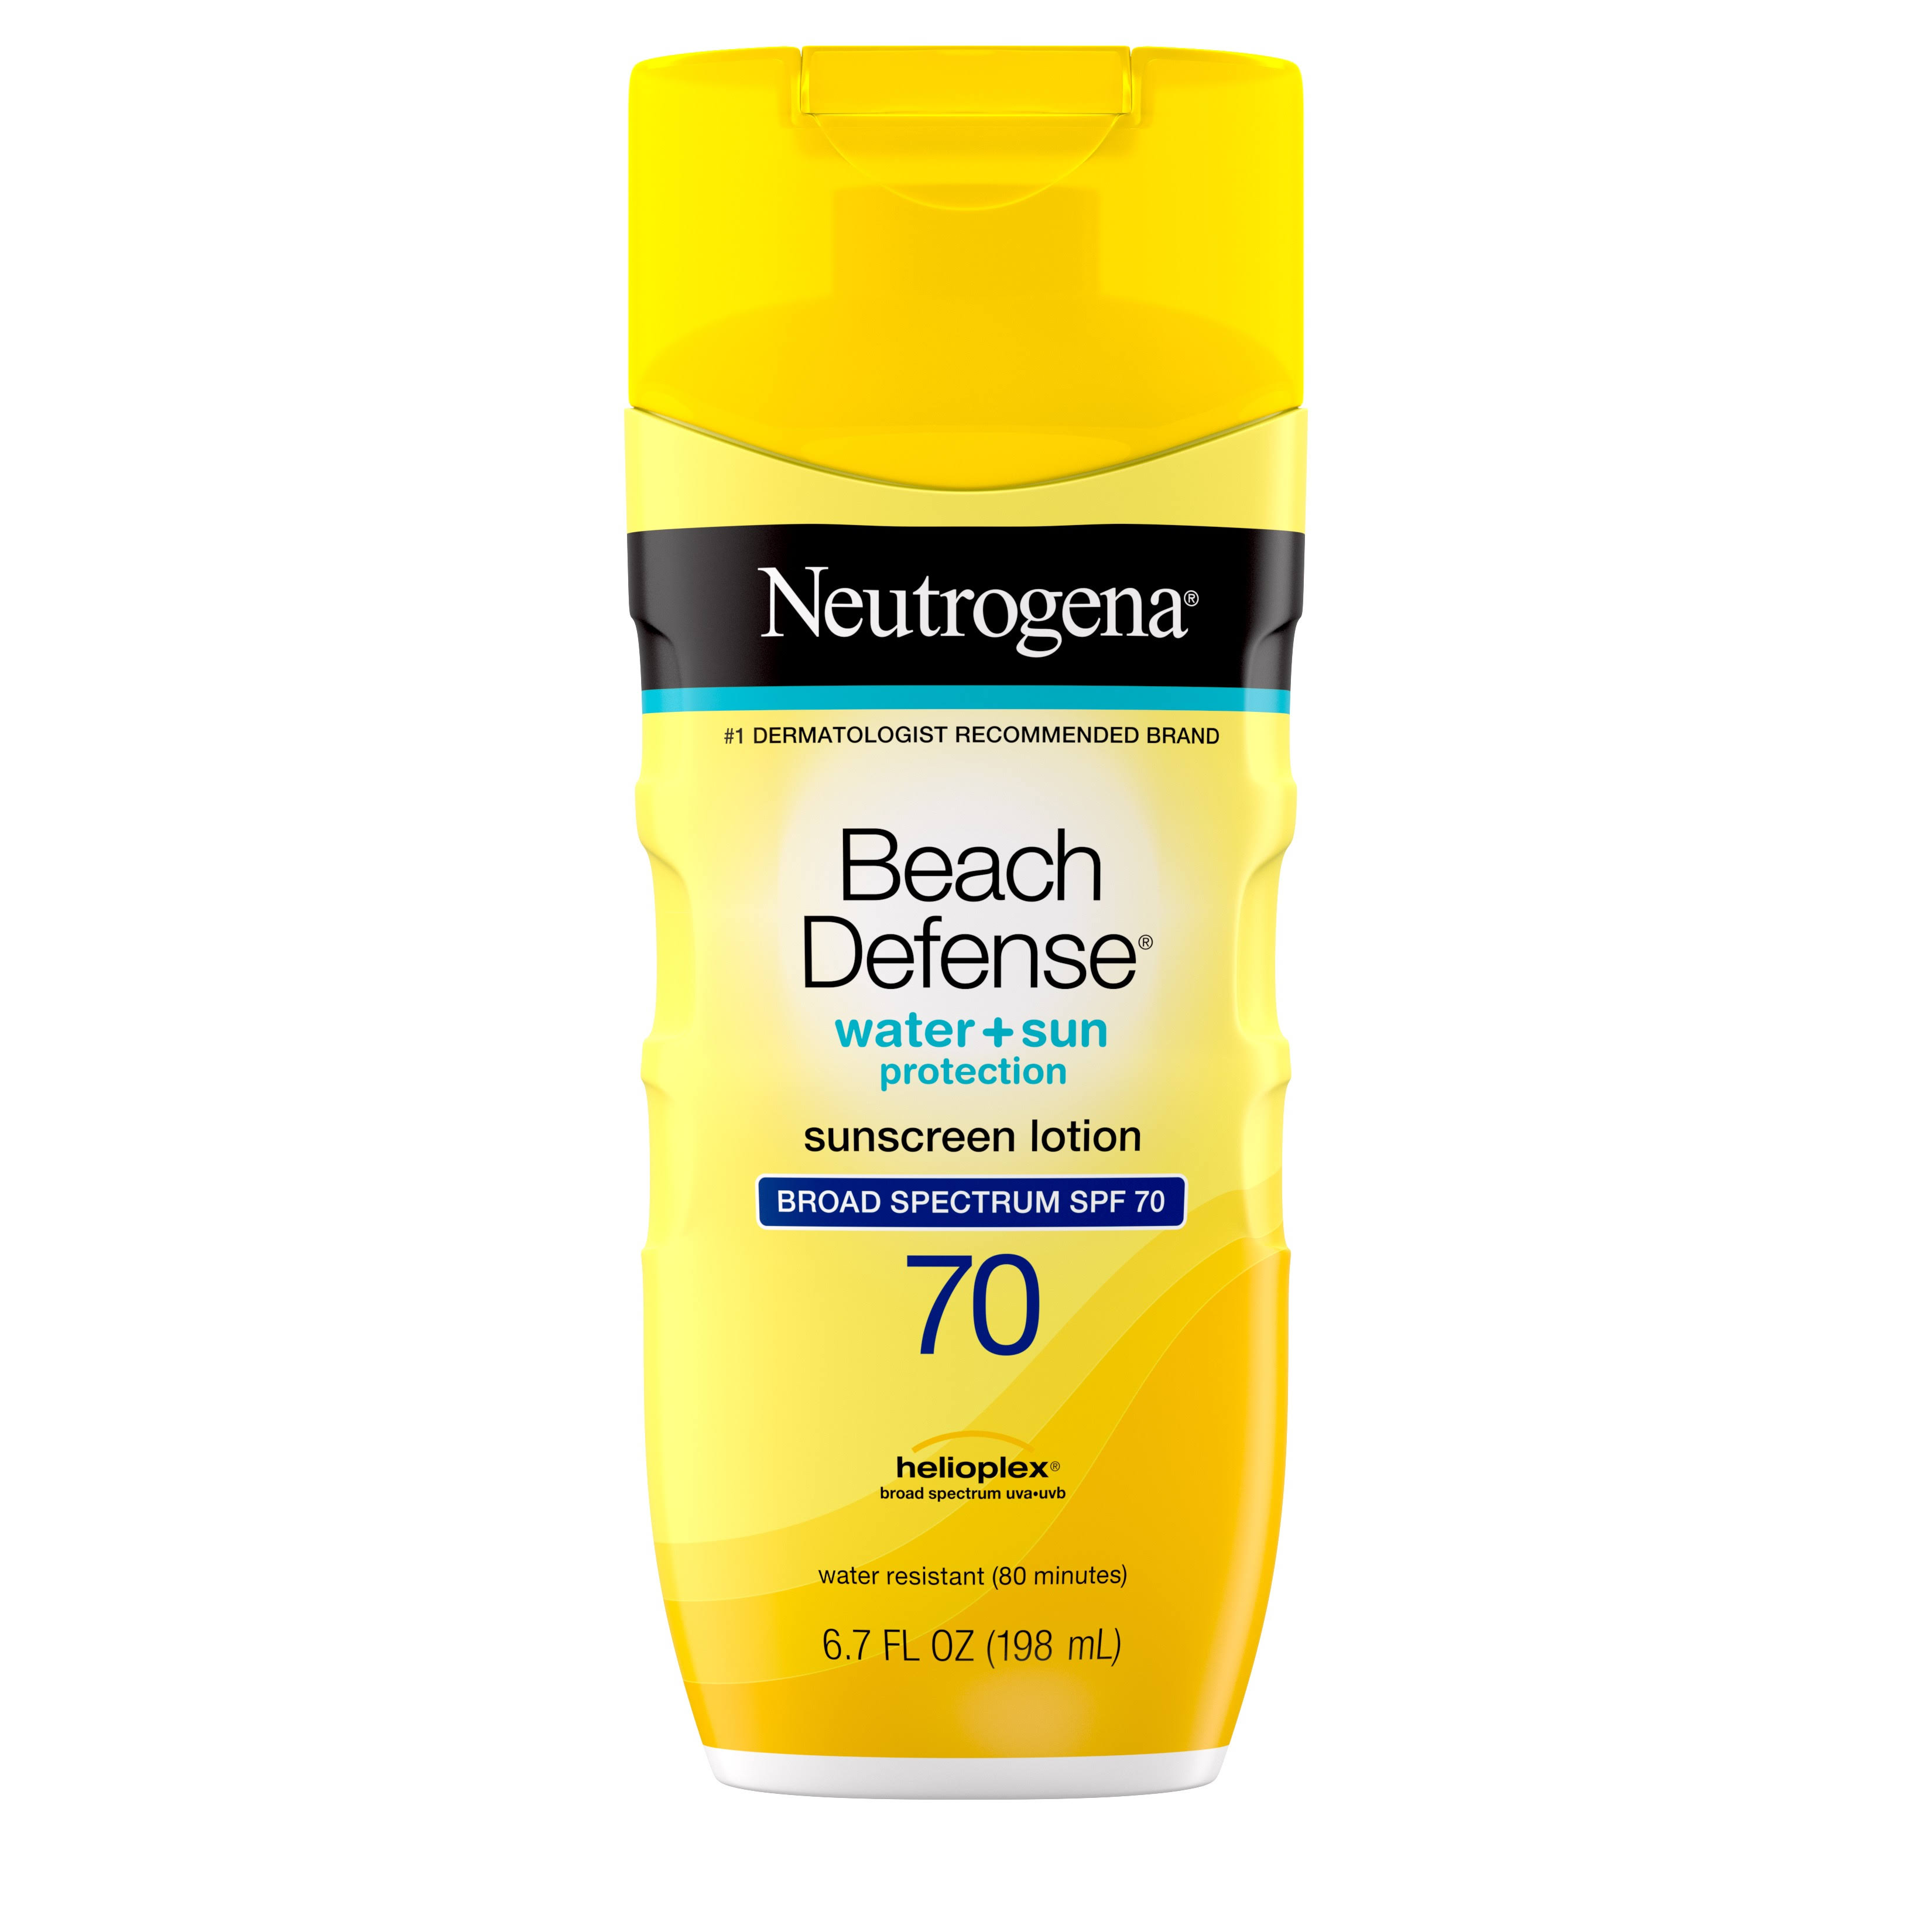 Neutrogena Beach Defense Broad Spectrum Sunscreen Lotion - Spf 70, 6.7oz